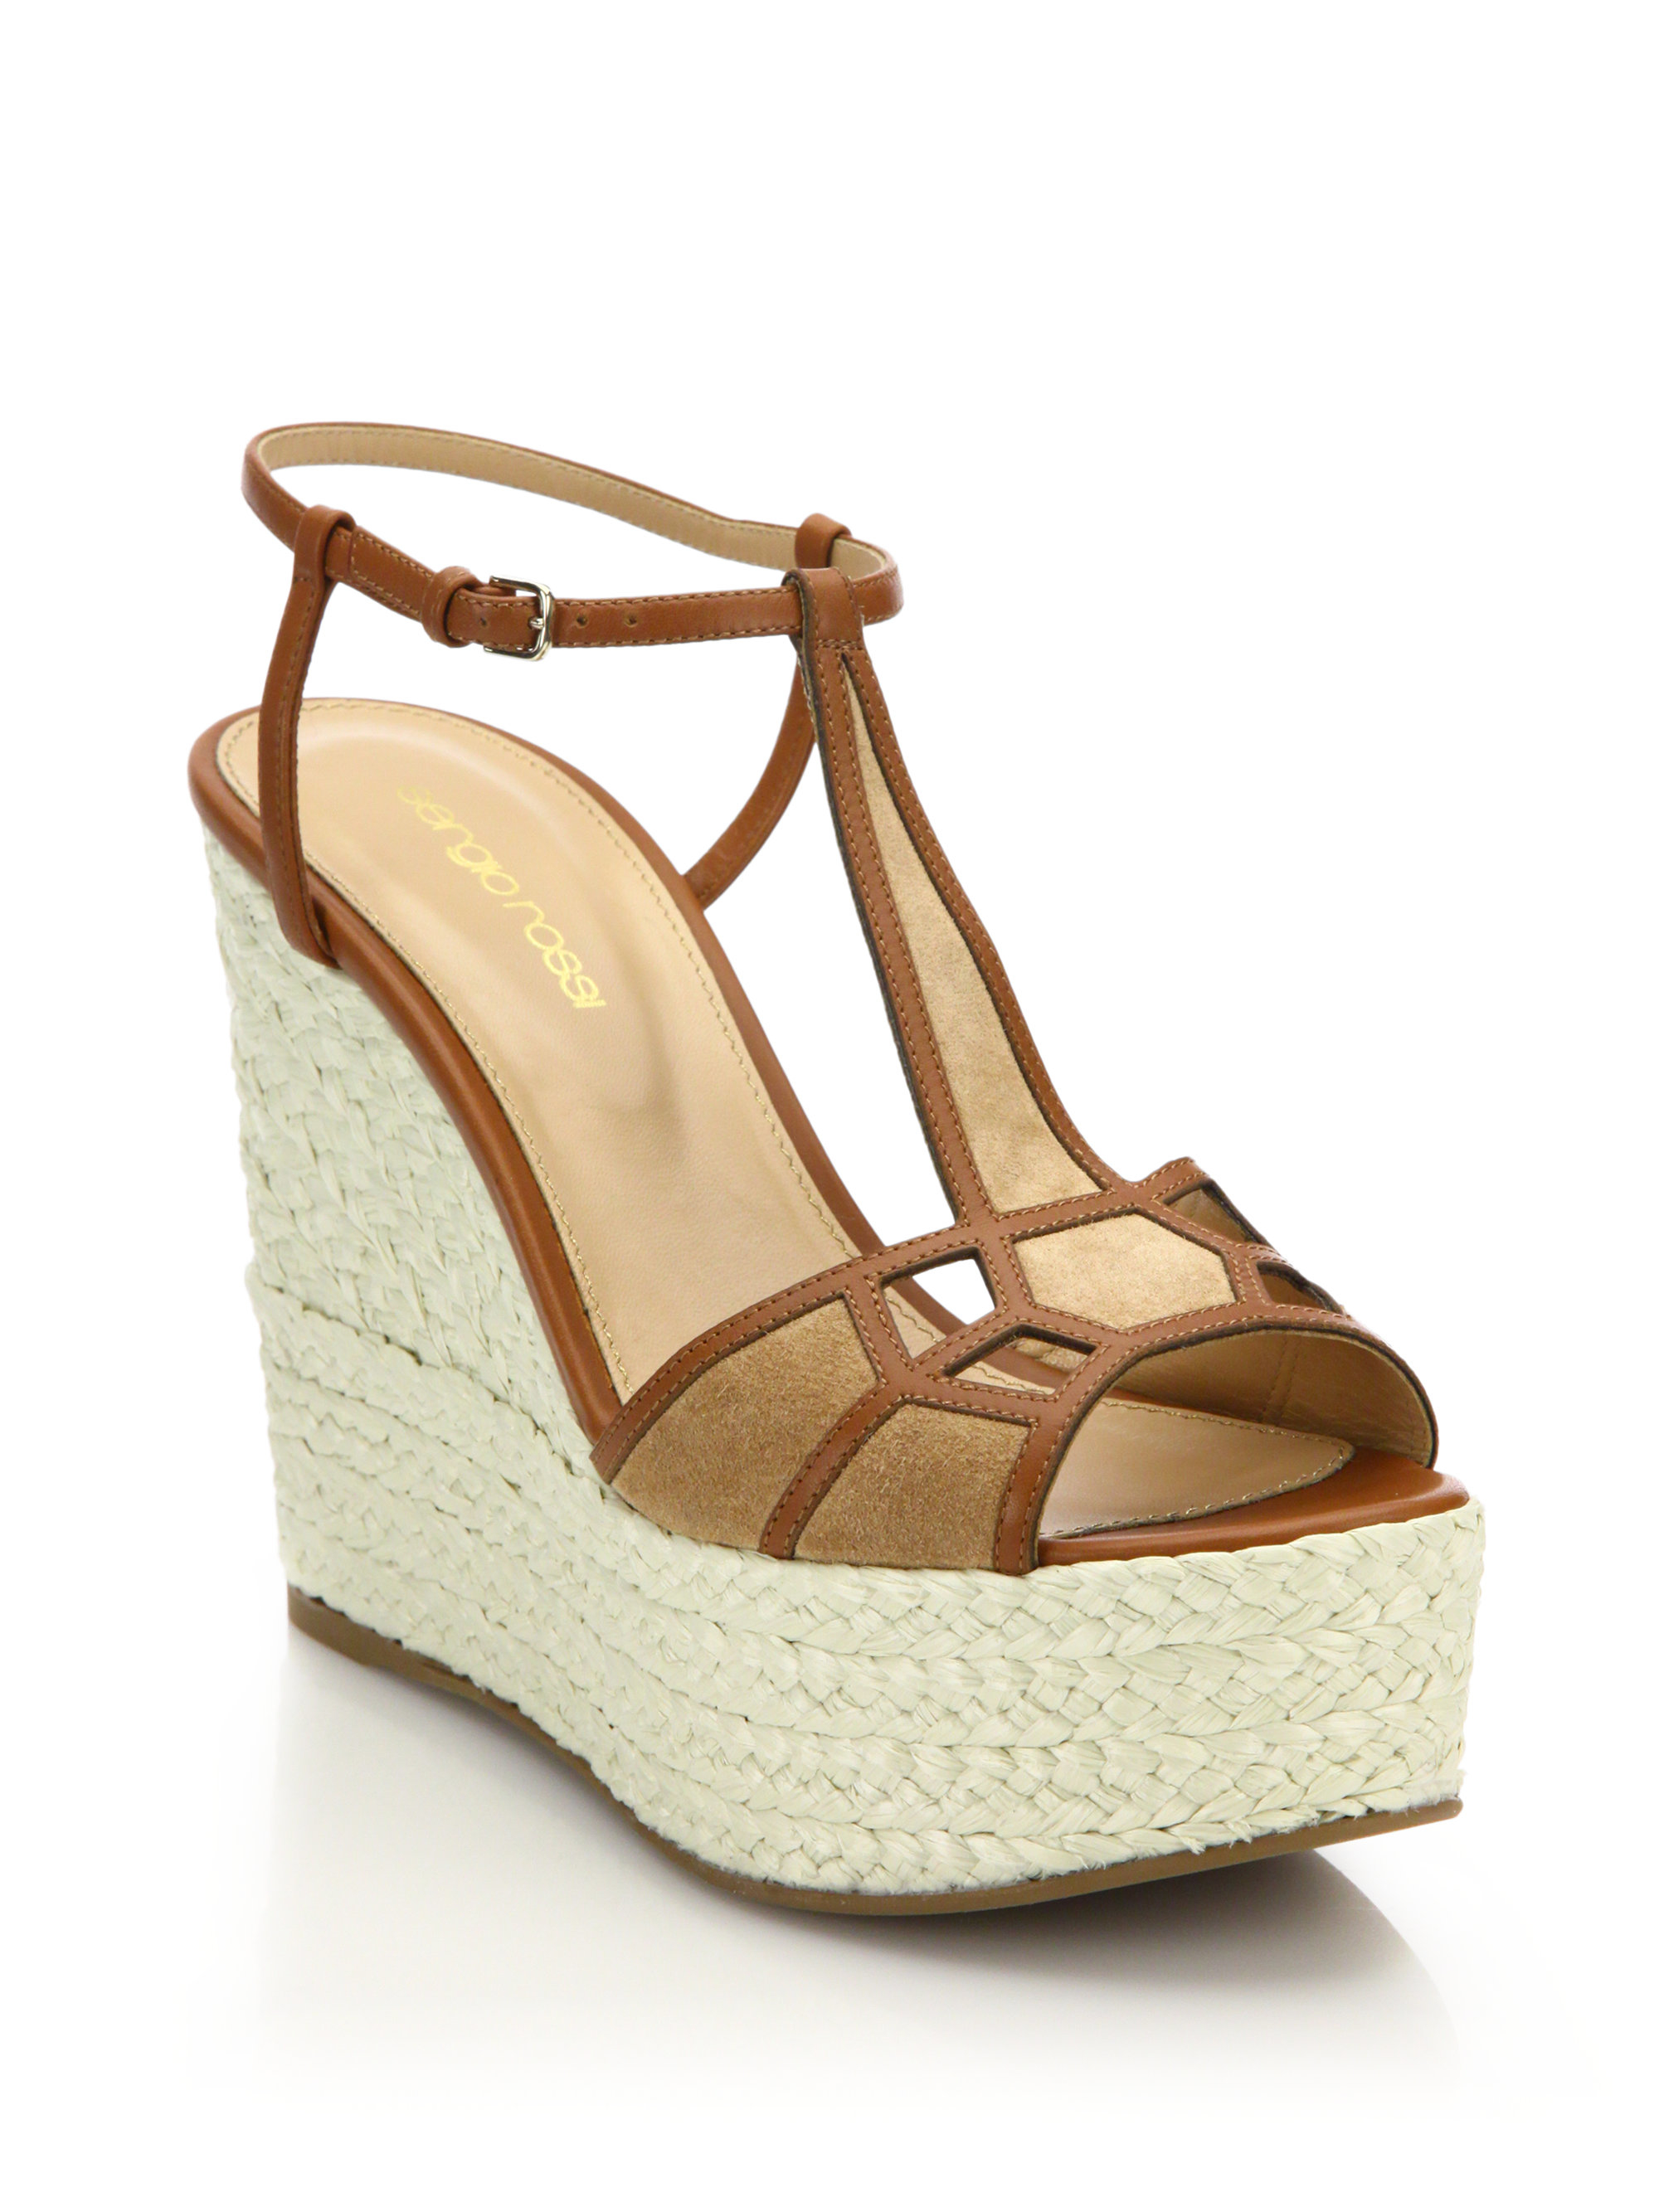 Sergio Rossi Platform sandals smooth leather suede white SnBDrCakhQ